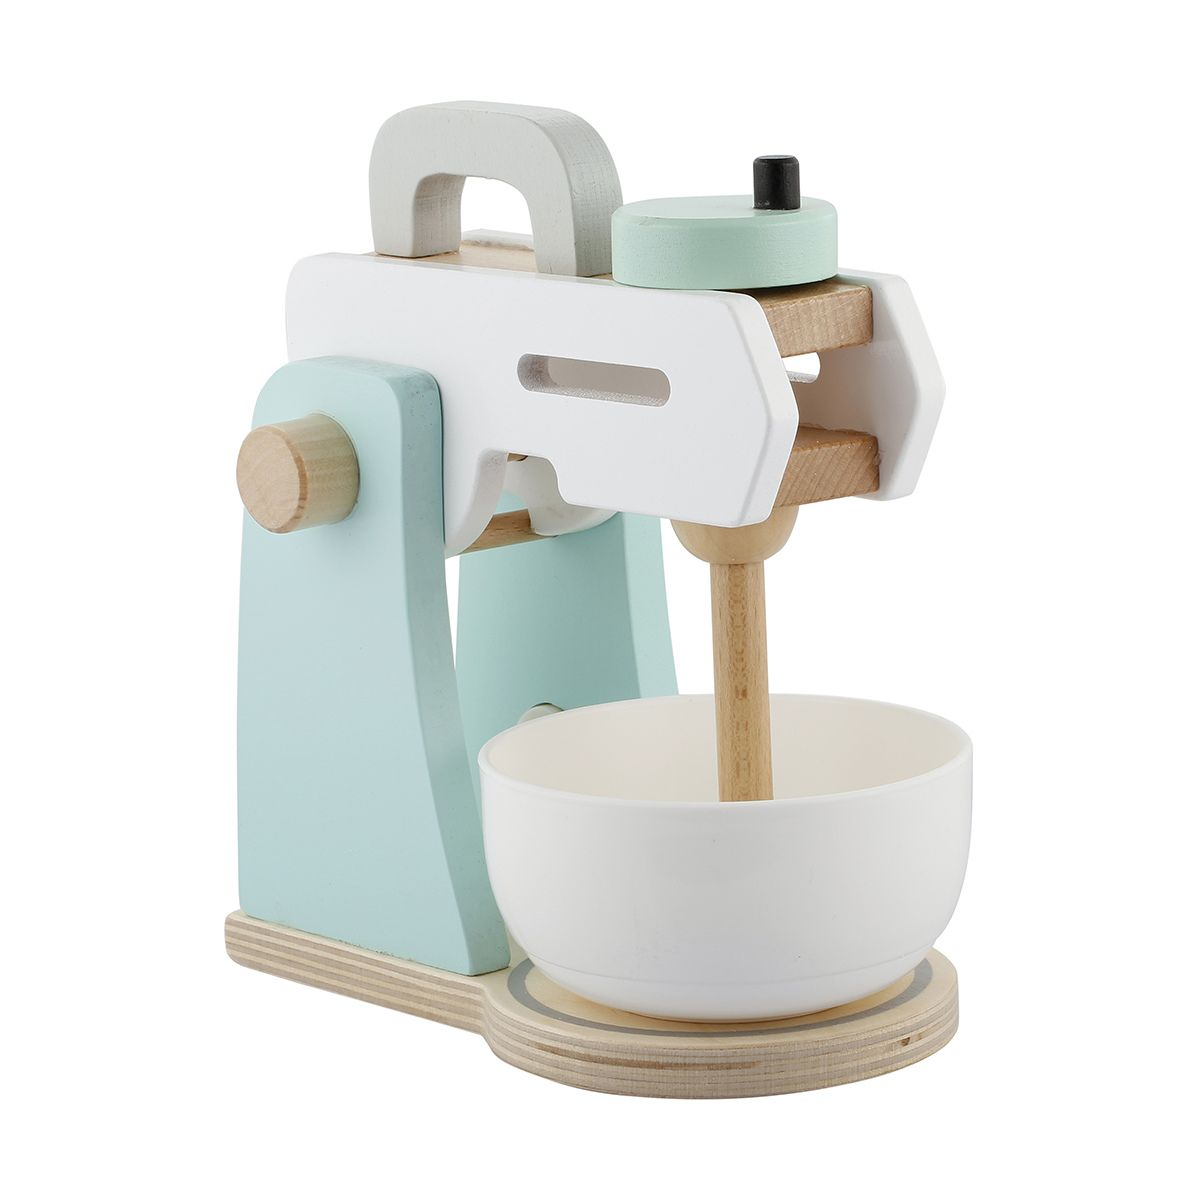 Wooden Toy Kitchen Mixer | Wooden toy kitchen, Toy kitchen and ...